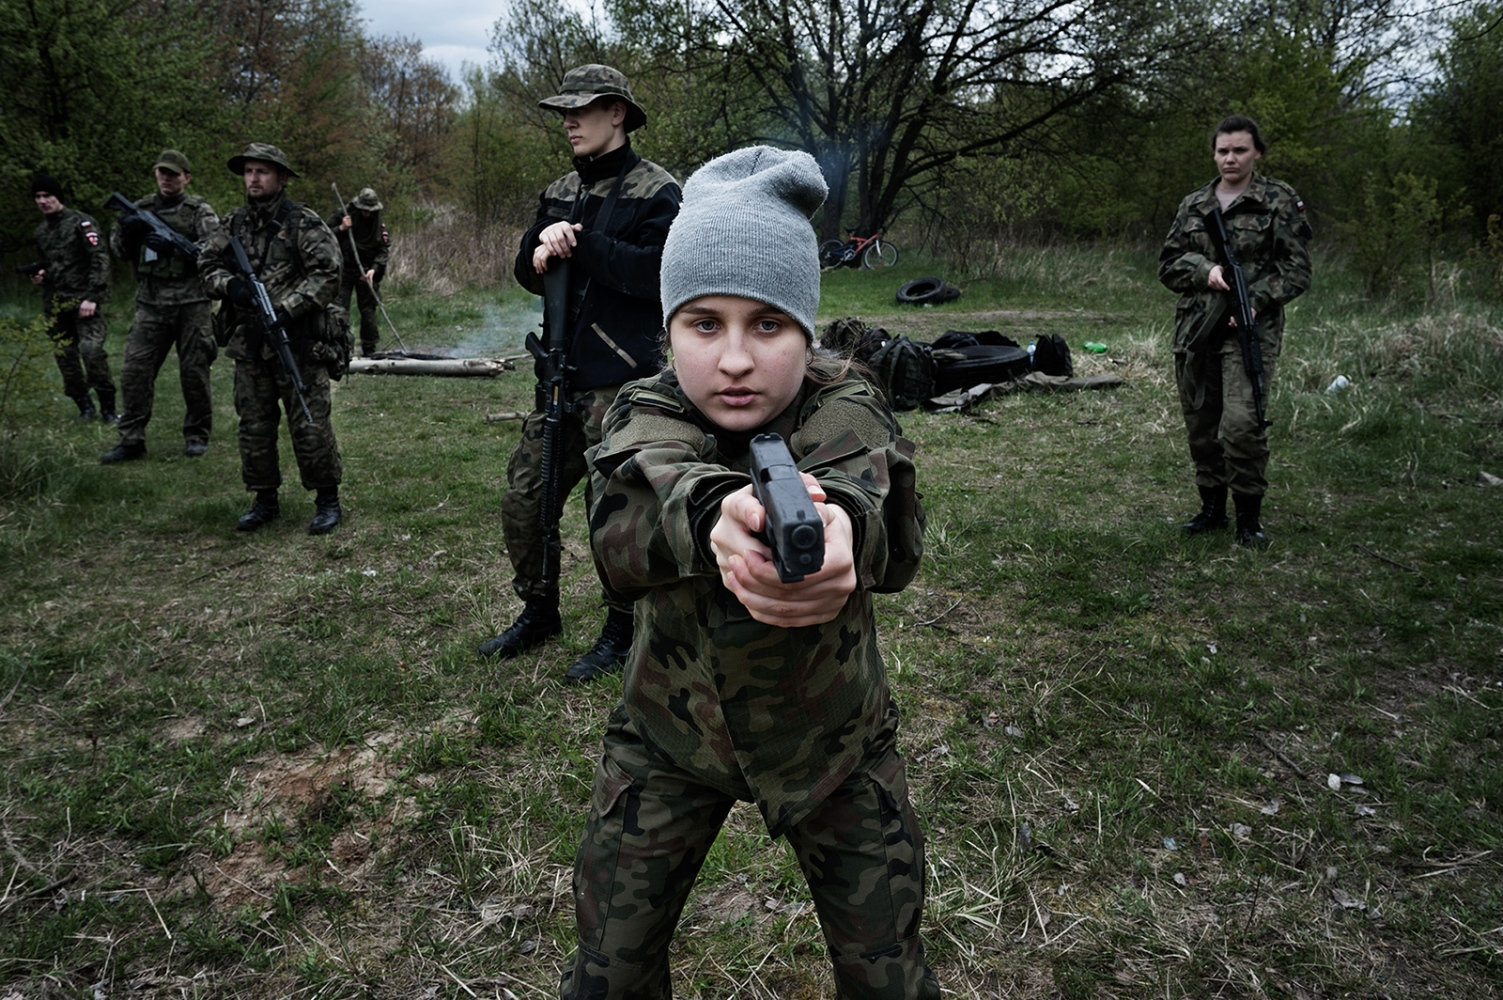 """One of the students (16 years old) during practical activities carried out by the paramilitaries in the public high school in Brzeg. Skarbimierz/Brzeg 2017 In Poland the first military classes were created in 1999, but only starting from 2014 the program began to arise greater interest among youth. The classes are aimed at teenagers between 16 and 19 years old, although some of the schools allow enrolling at the age of 13. The program considered as a """"pedagogical innovation"""" is developed within the framework of the subject Education for Security. As such it is not officially recognized by the Ministry of National education, but enjoys an increasing tutelage of the Polish Army; especially since the ultra-conservative Law and Justice Party came to power in Poland in October 2015."""